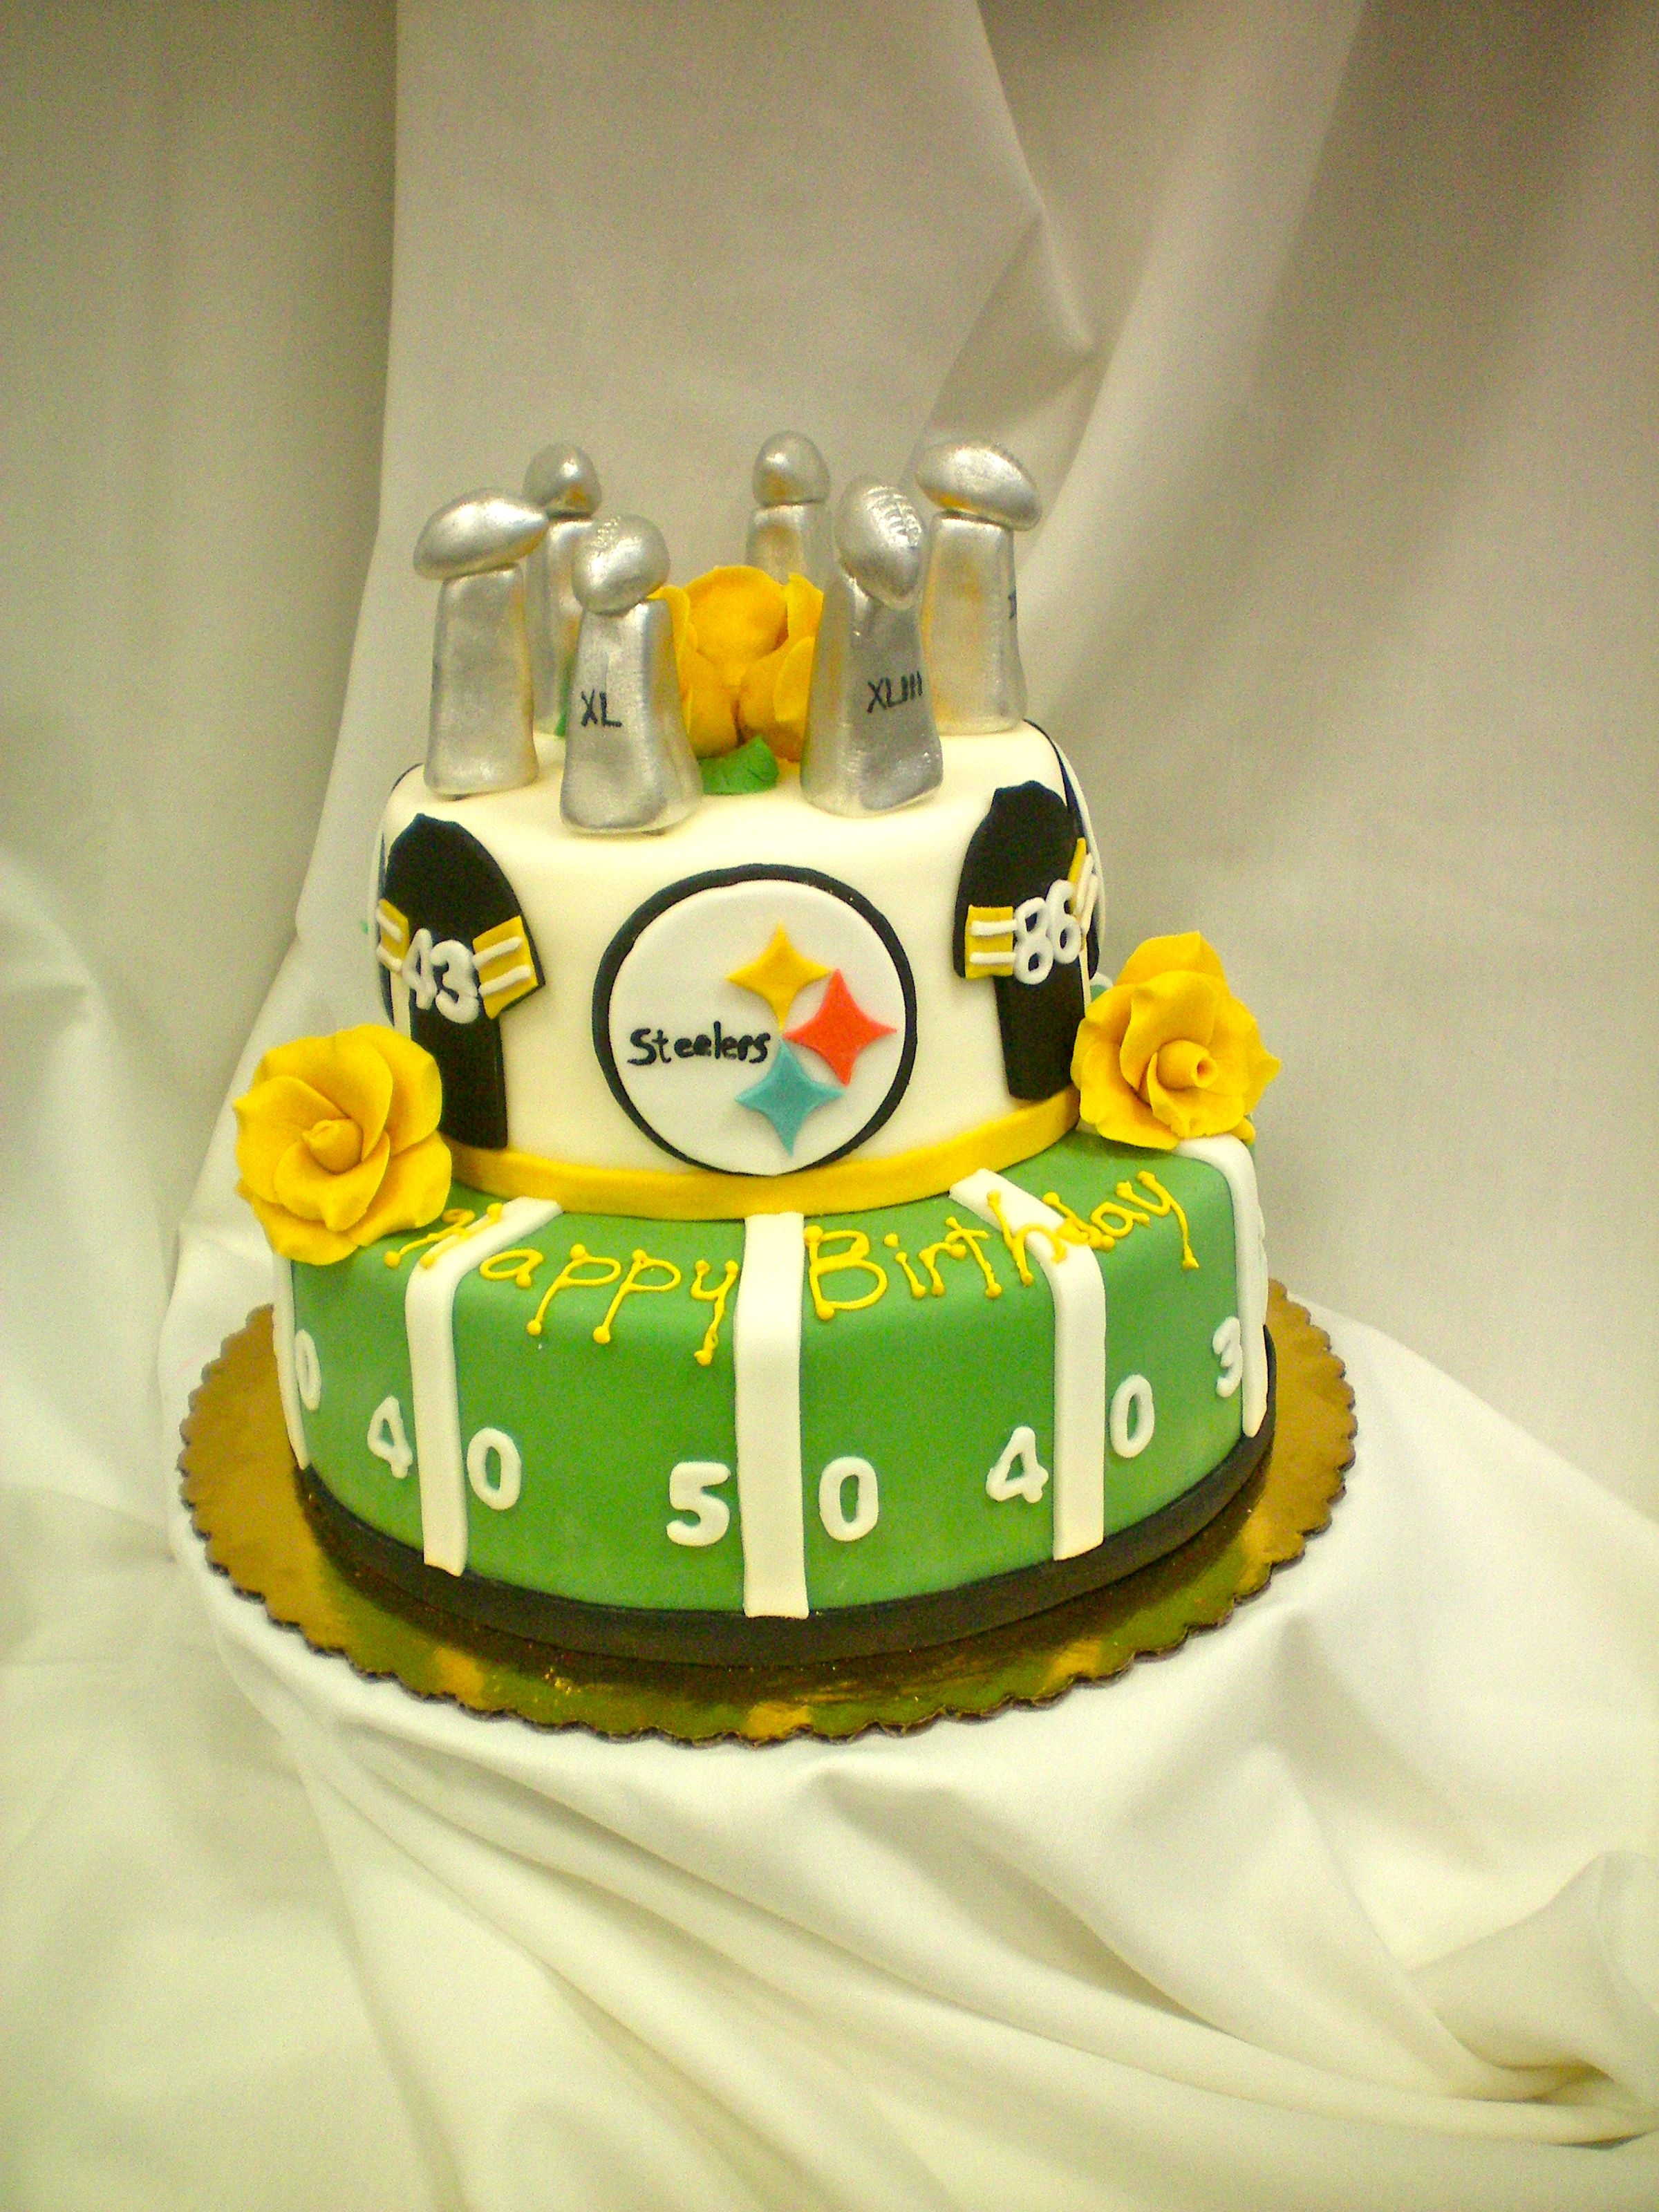 Steelers Cake Things for My Wall Pinterest Cake Pittsburgh